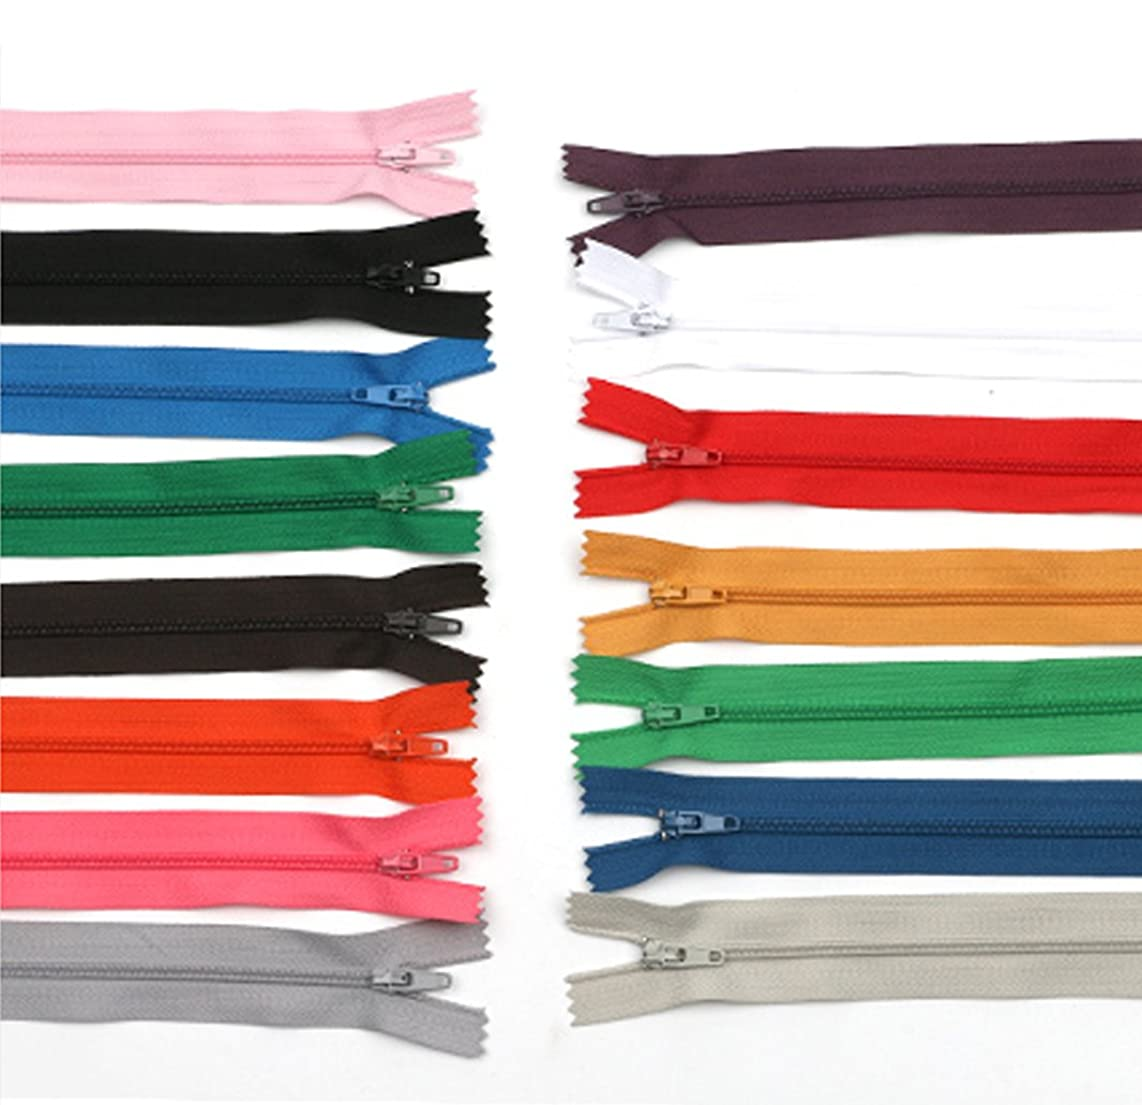 50Pcs 7 Inches Nylon Invisible Zippers for Tailor Sewer Sewing Craft Supplies, Color Random